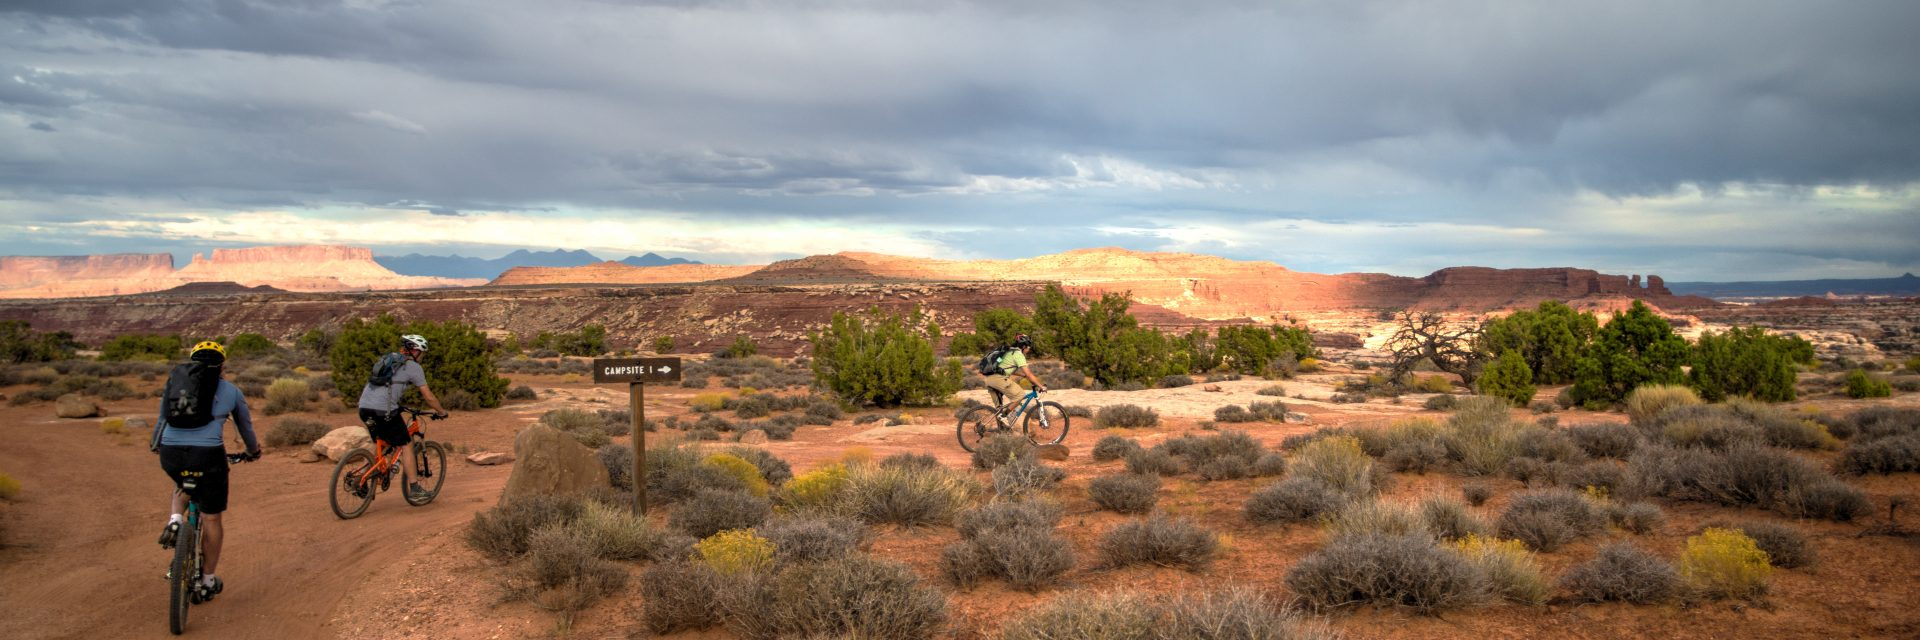 After a full day's ride, the group arrives at The Maze Overlook Campground in Canyonlands National Park